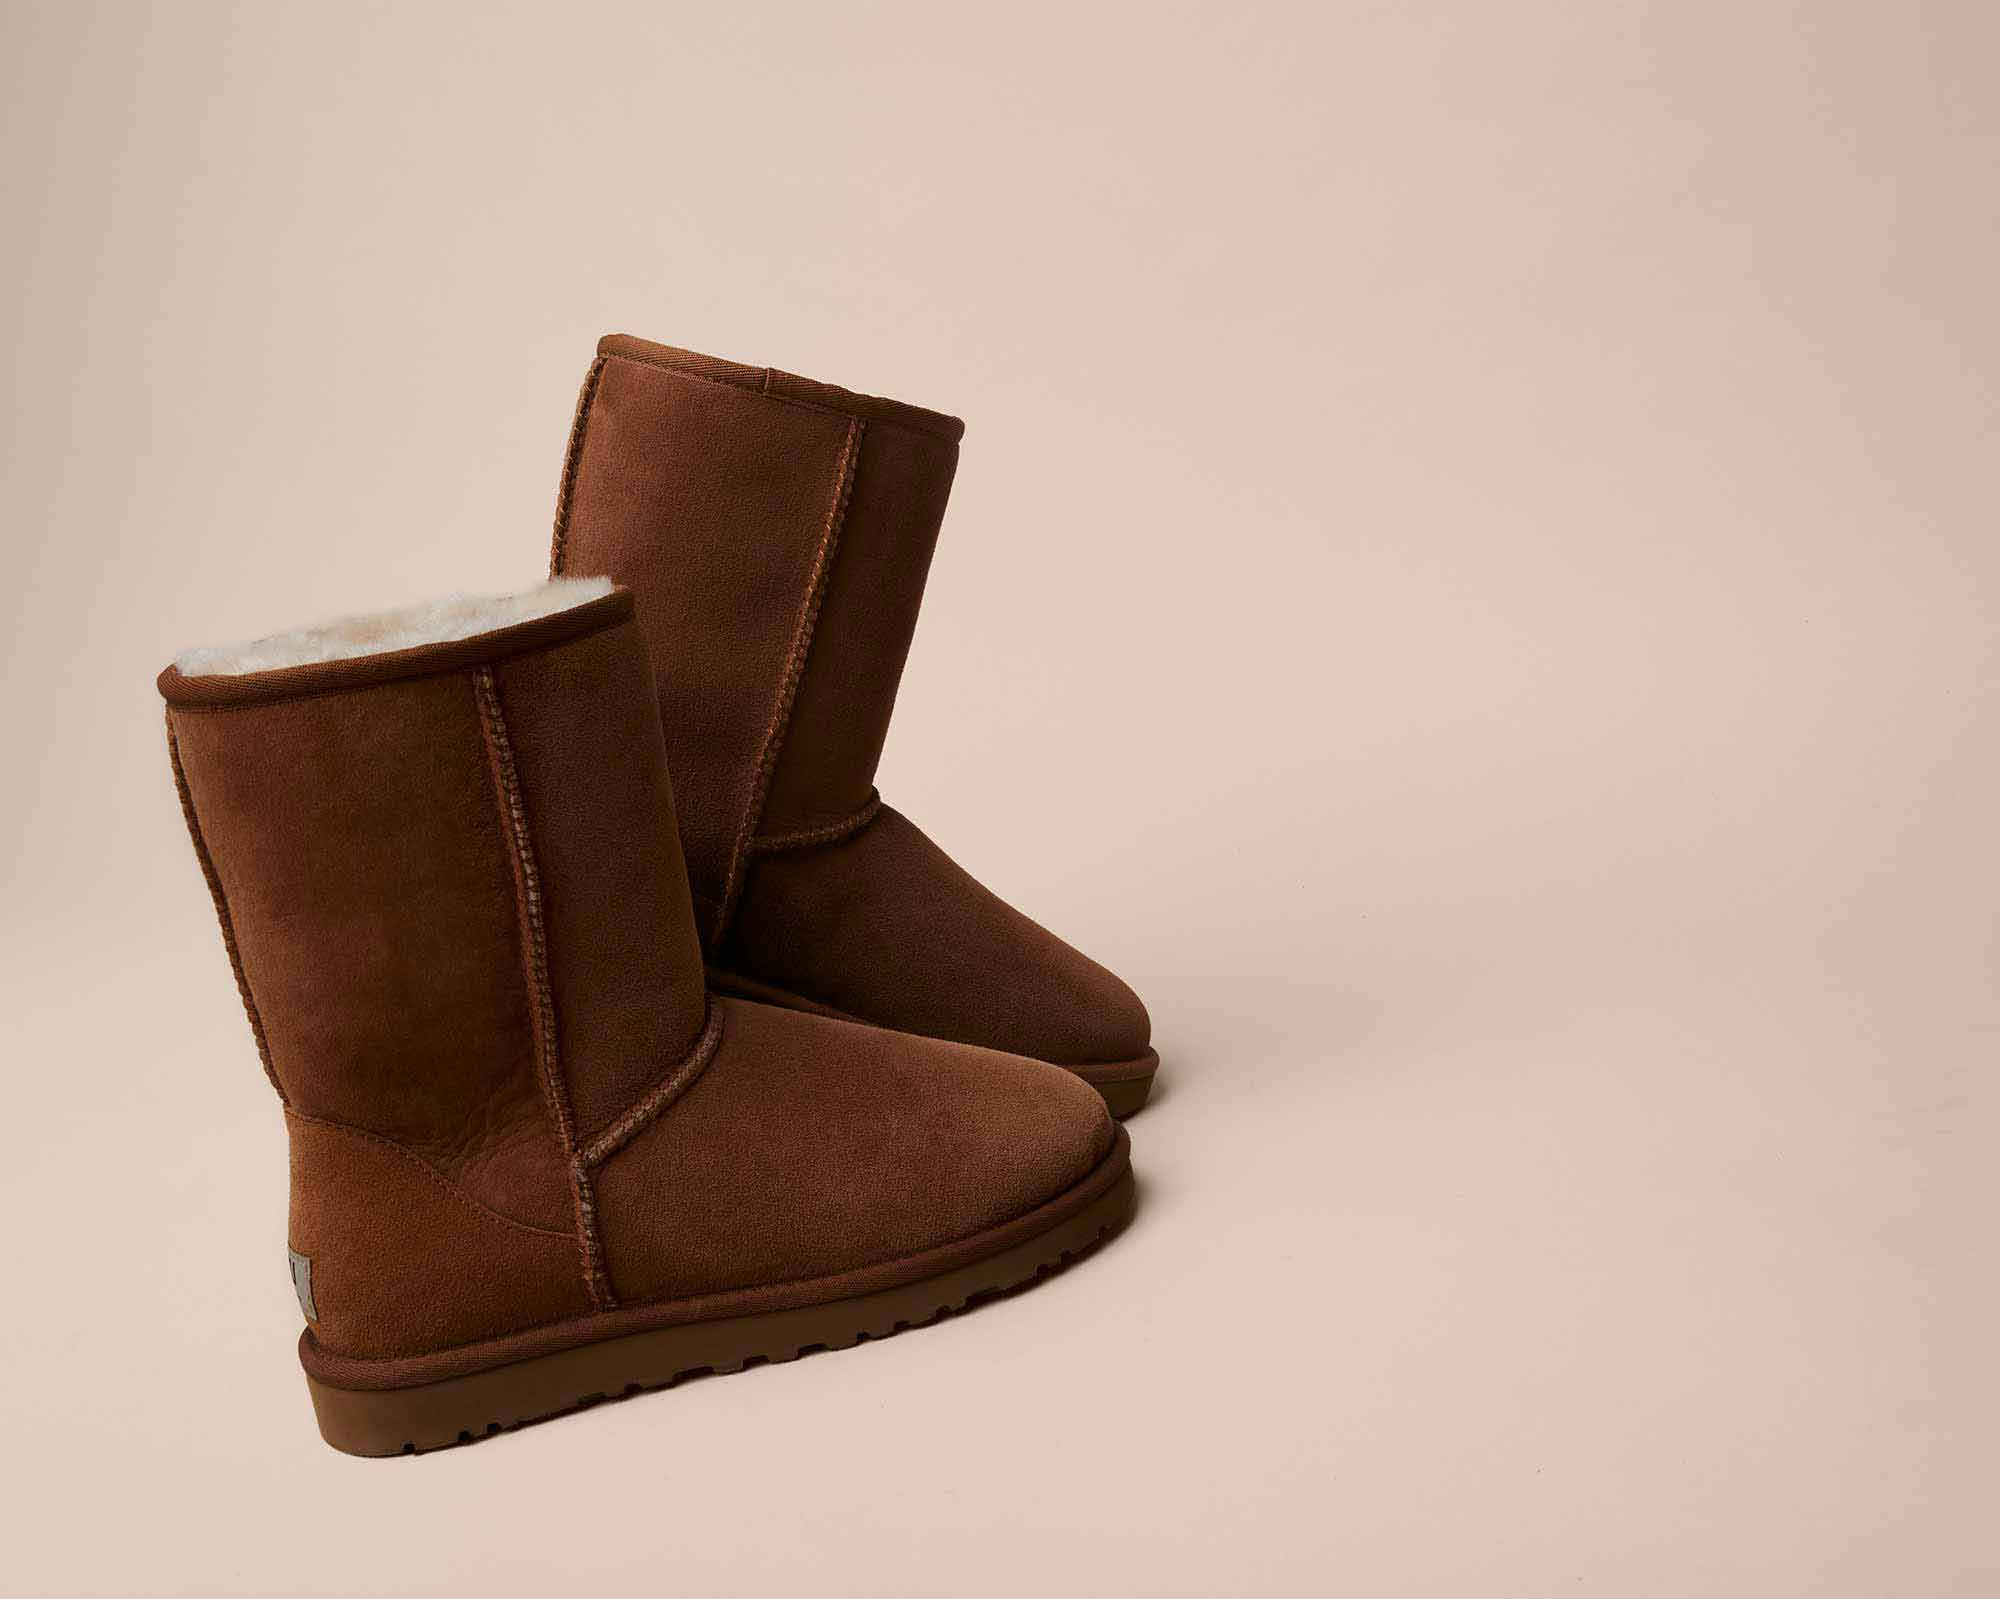 maroon colored uggs